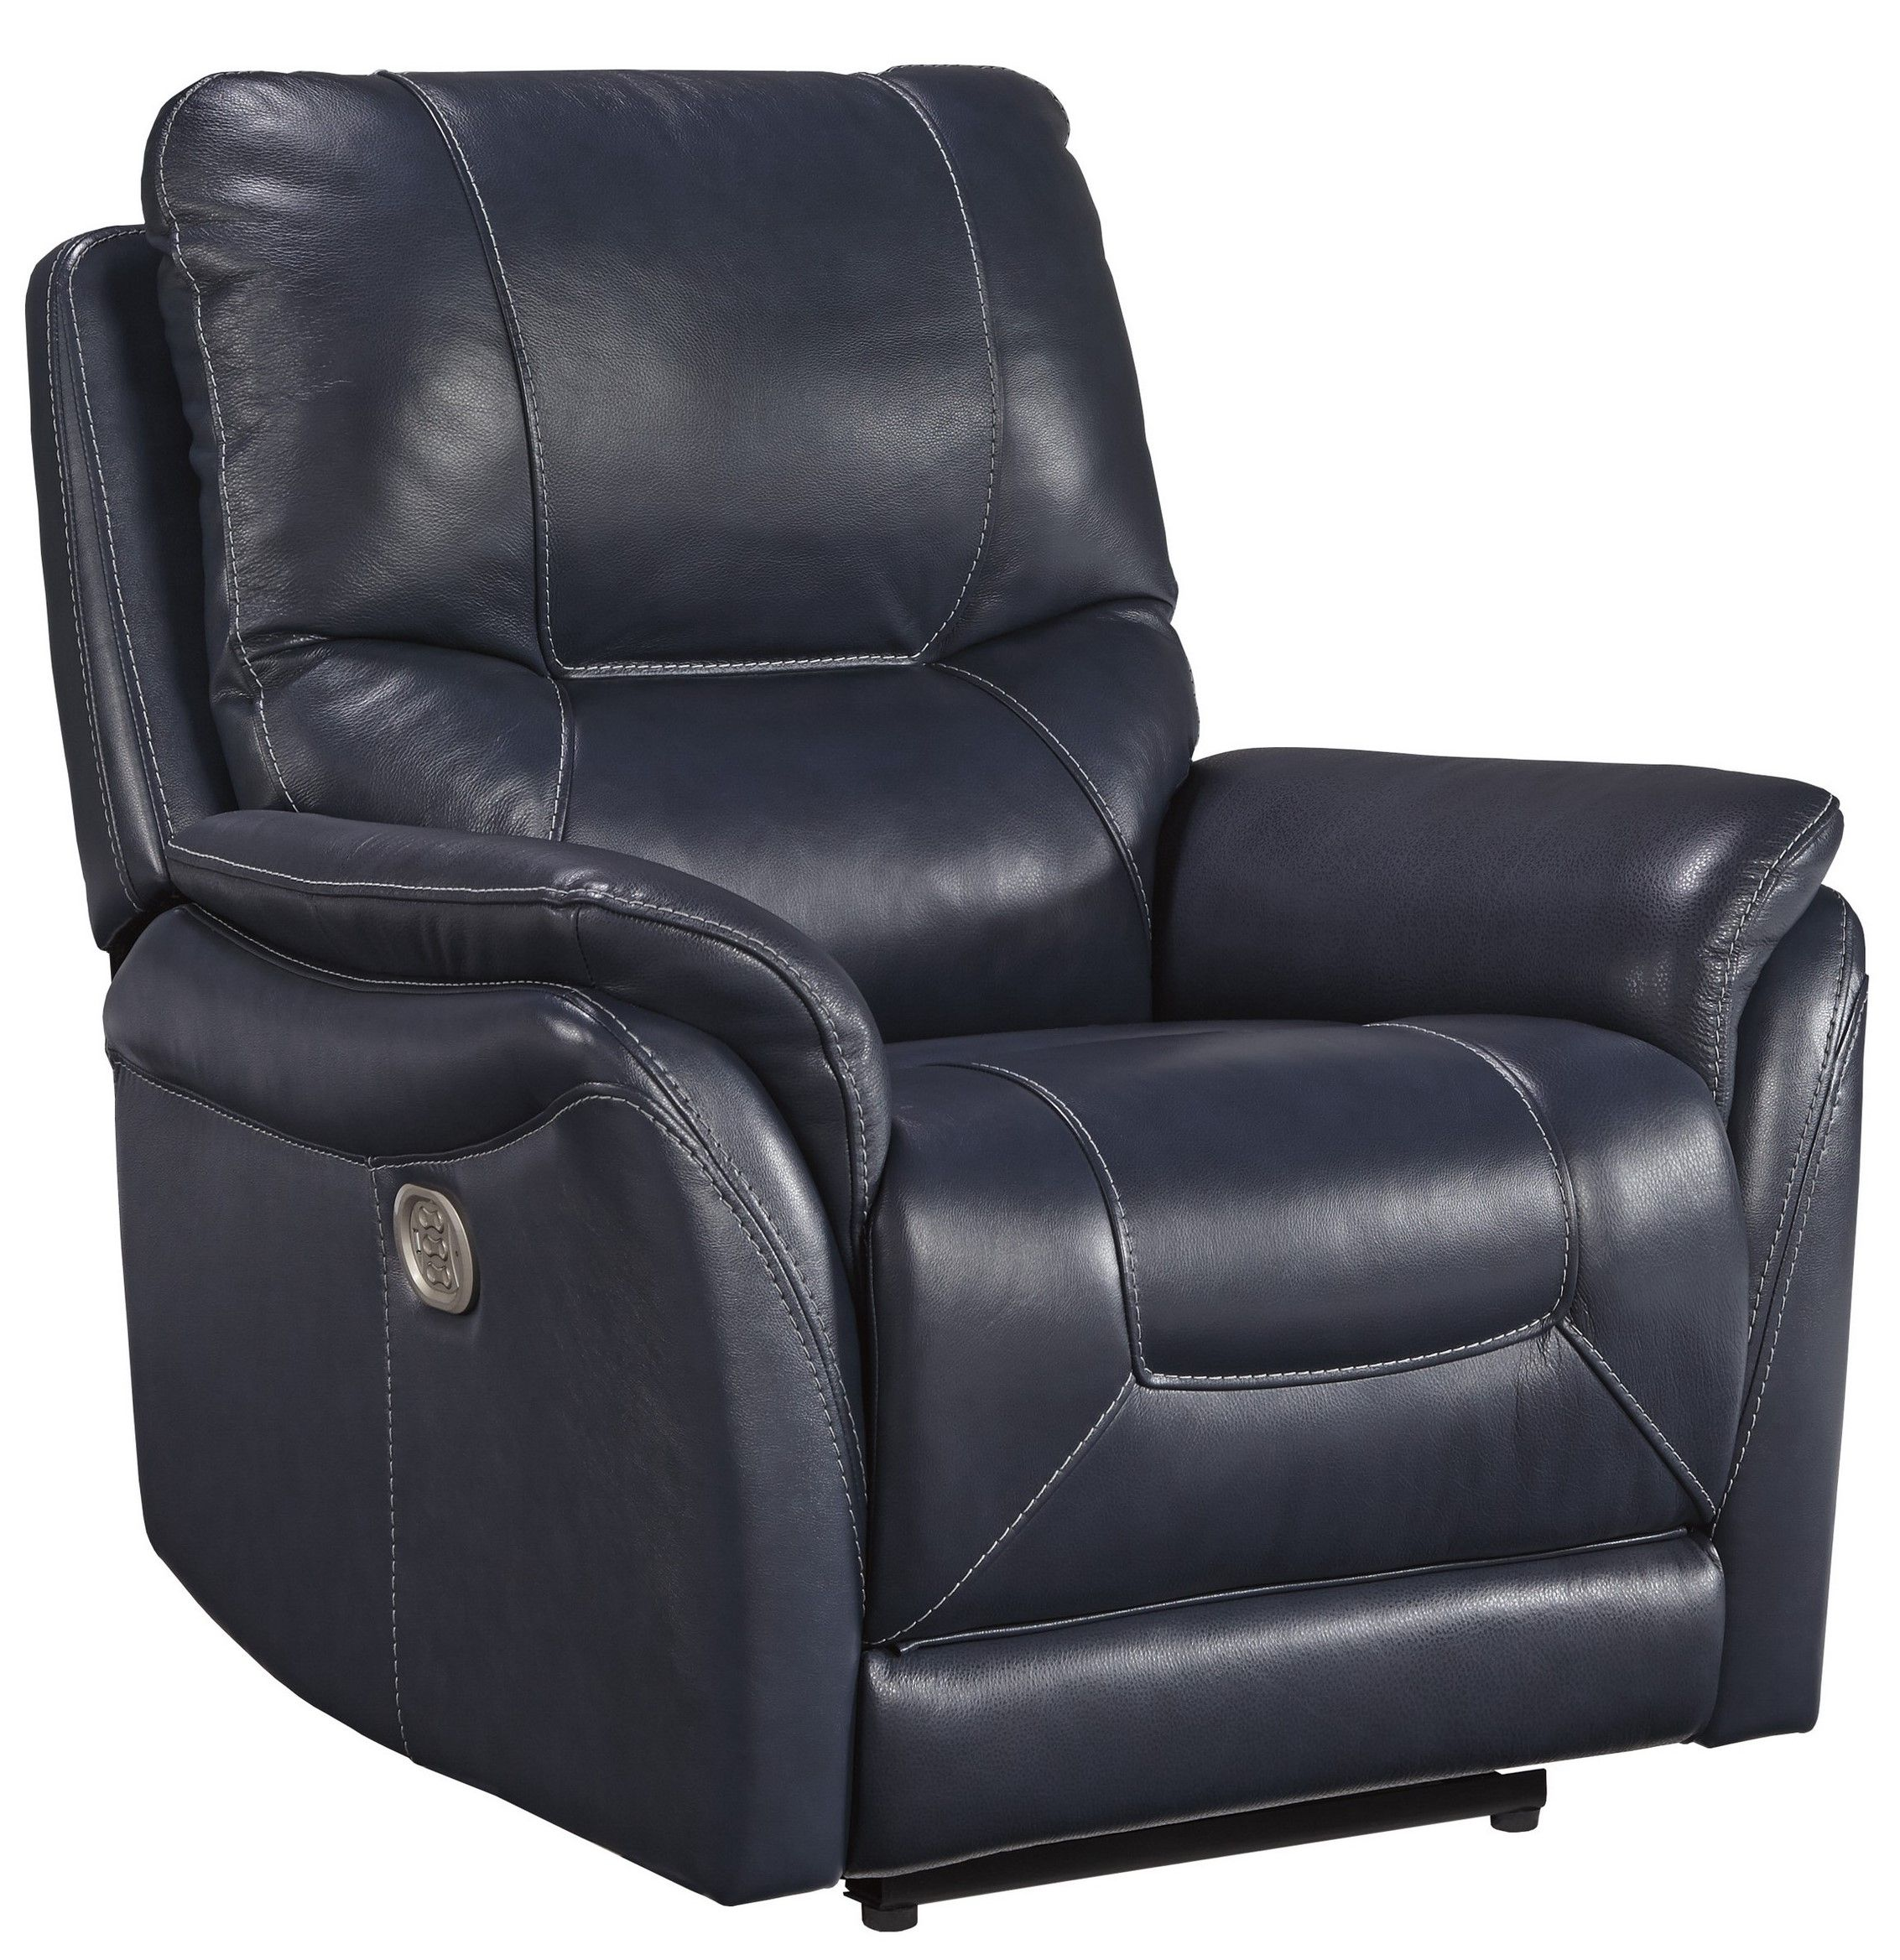 14 Ladies Recliner Chairs Ideas Recliner Leather Recliner Recliner Chair